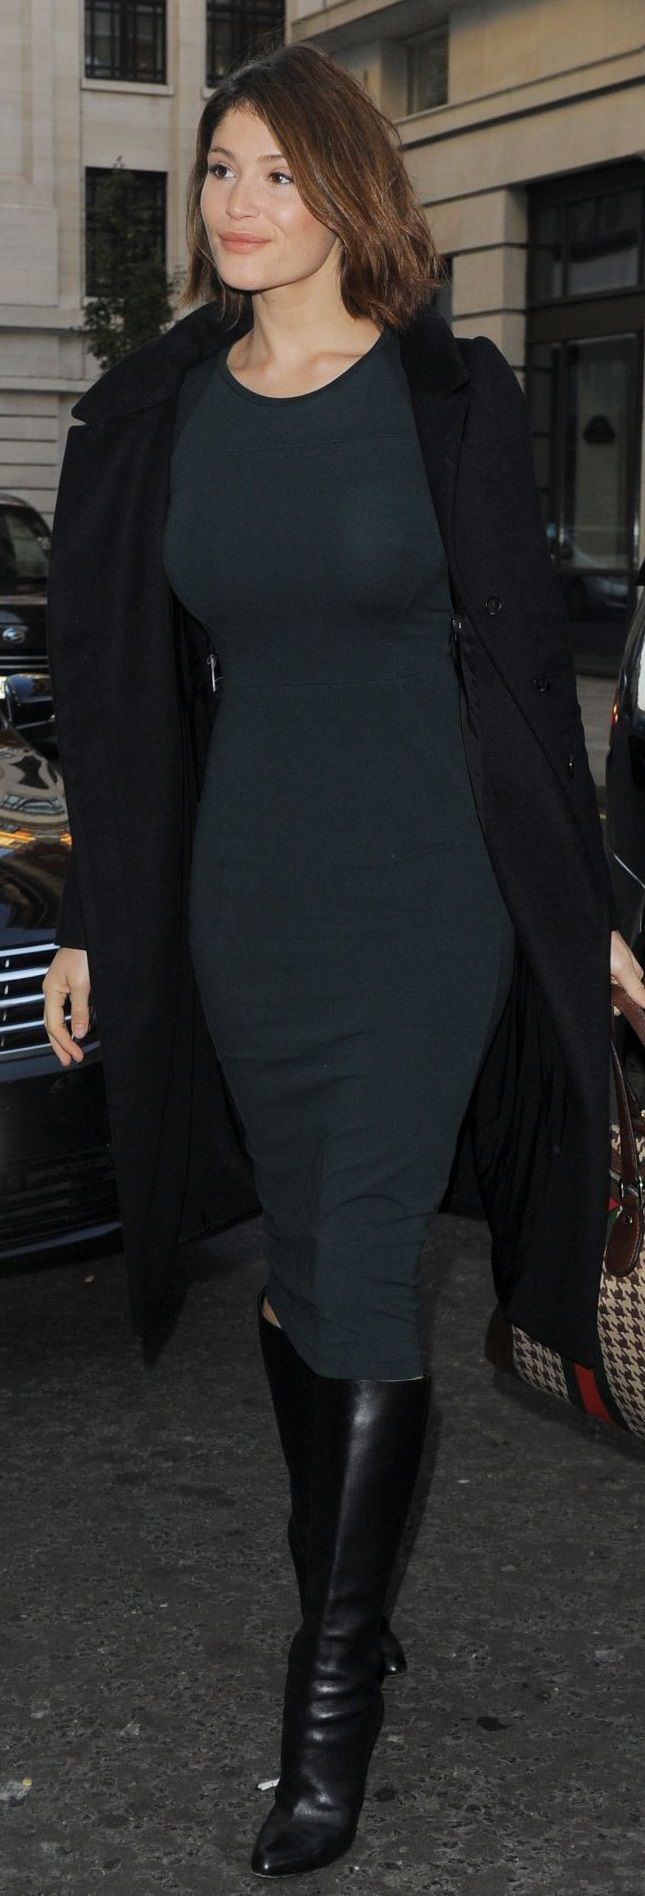 Gemma Arterton in sexy tight black knit dress and black boots